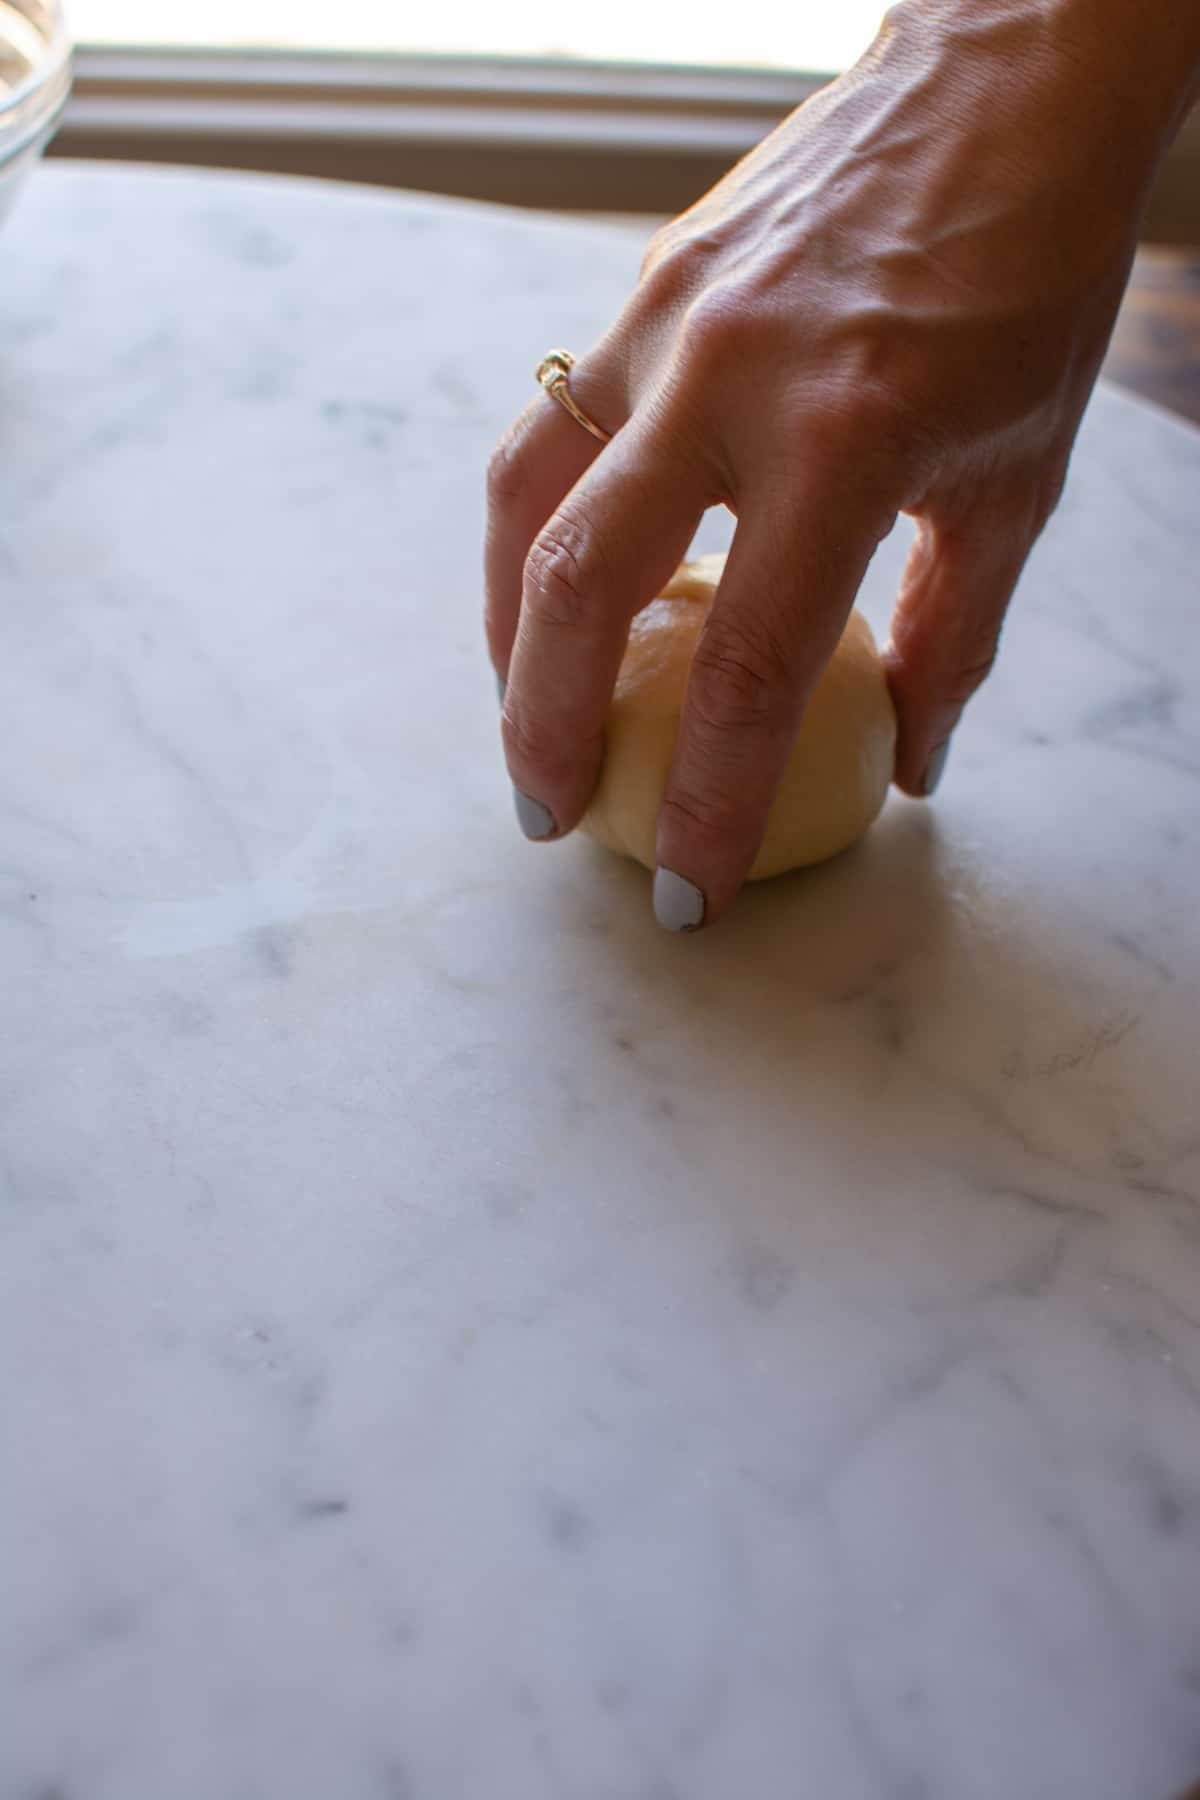 A hand wrapped around a piece of bread dough on a marble table.